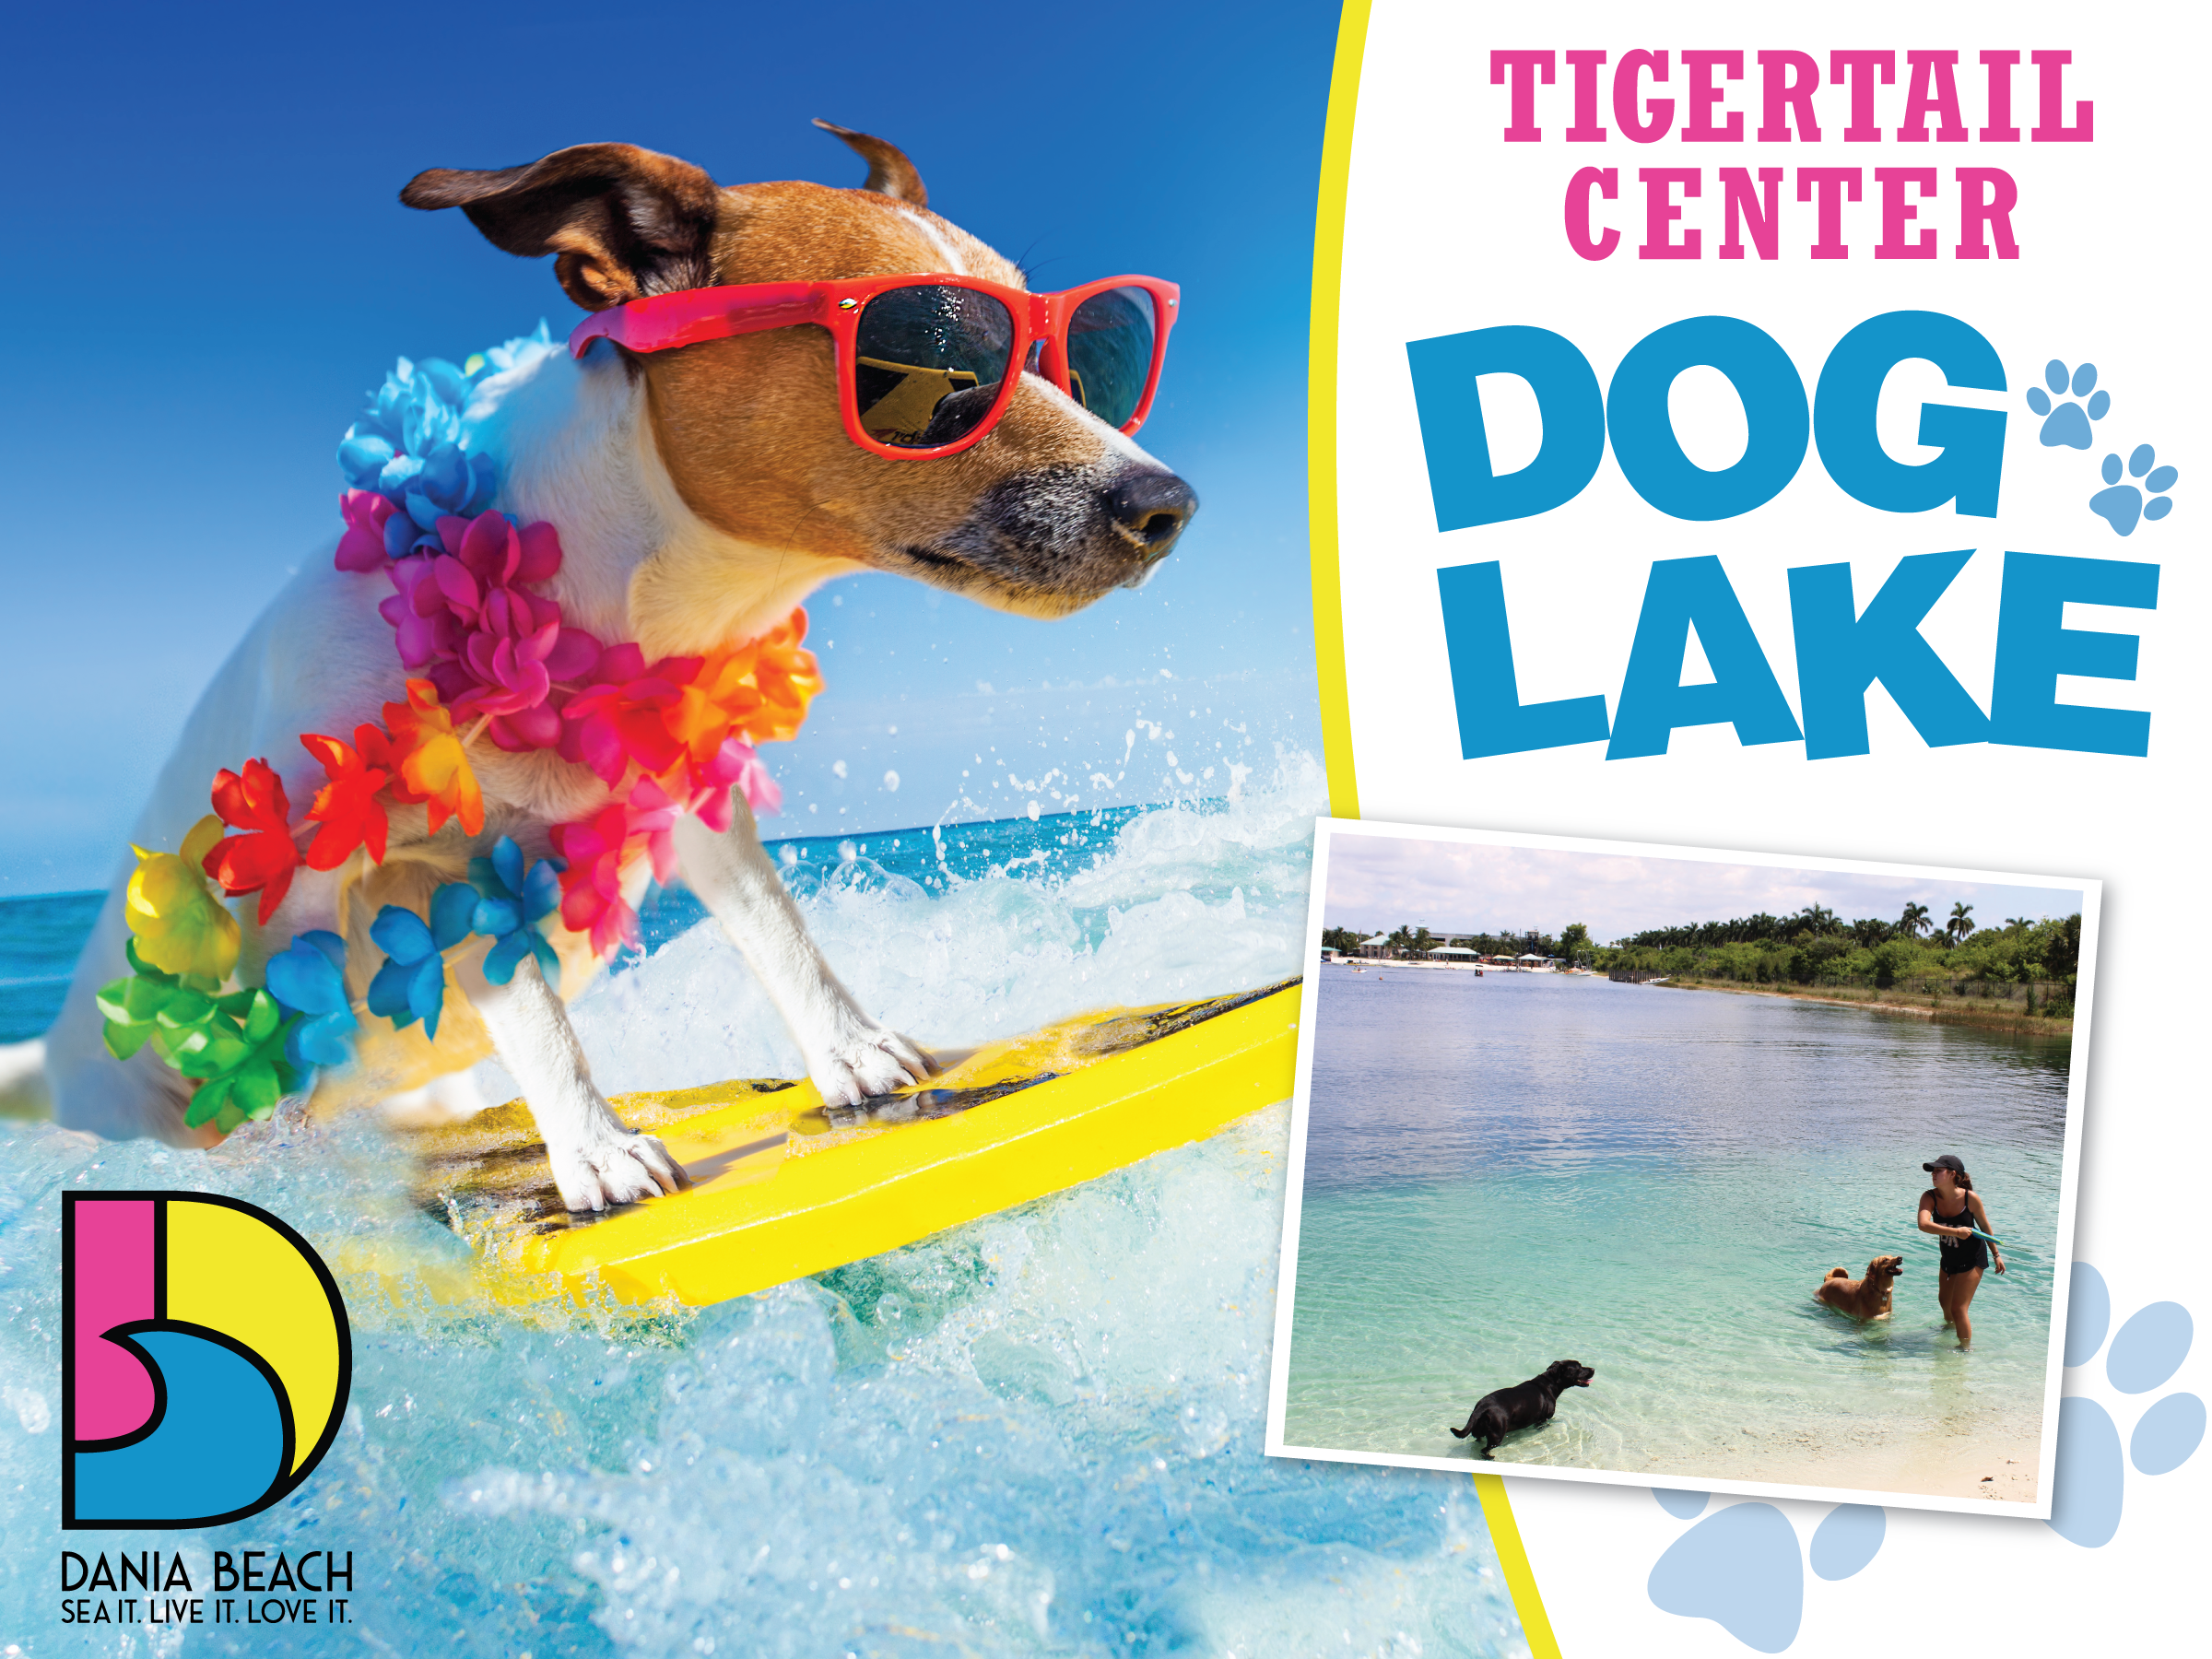 Tiger Tail Dog Lake Dania Beach